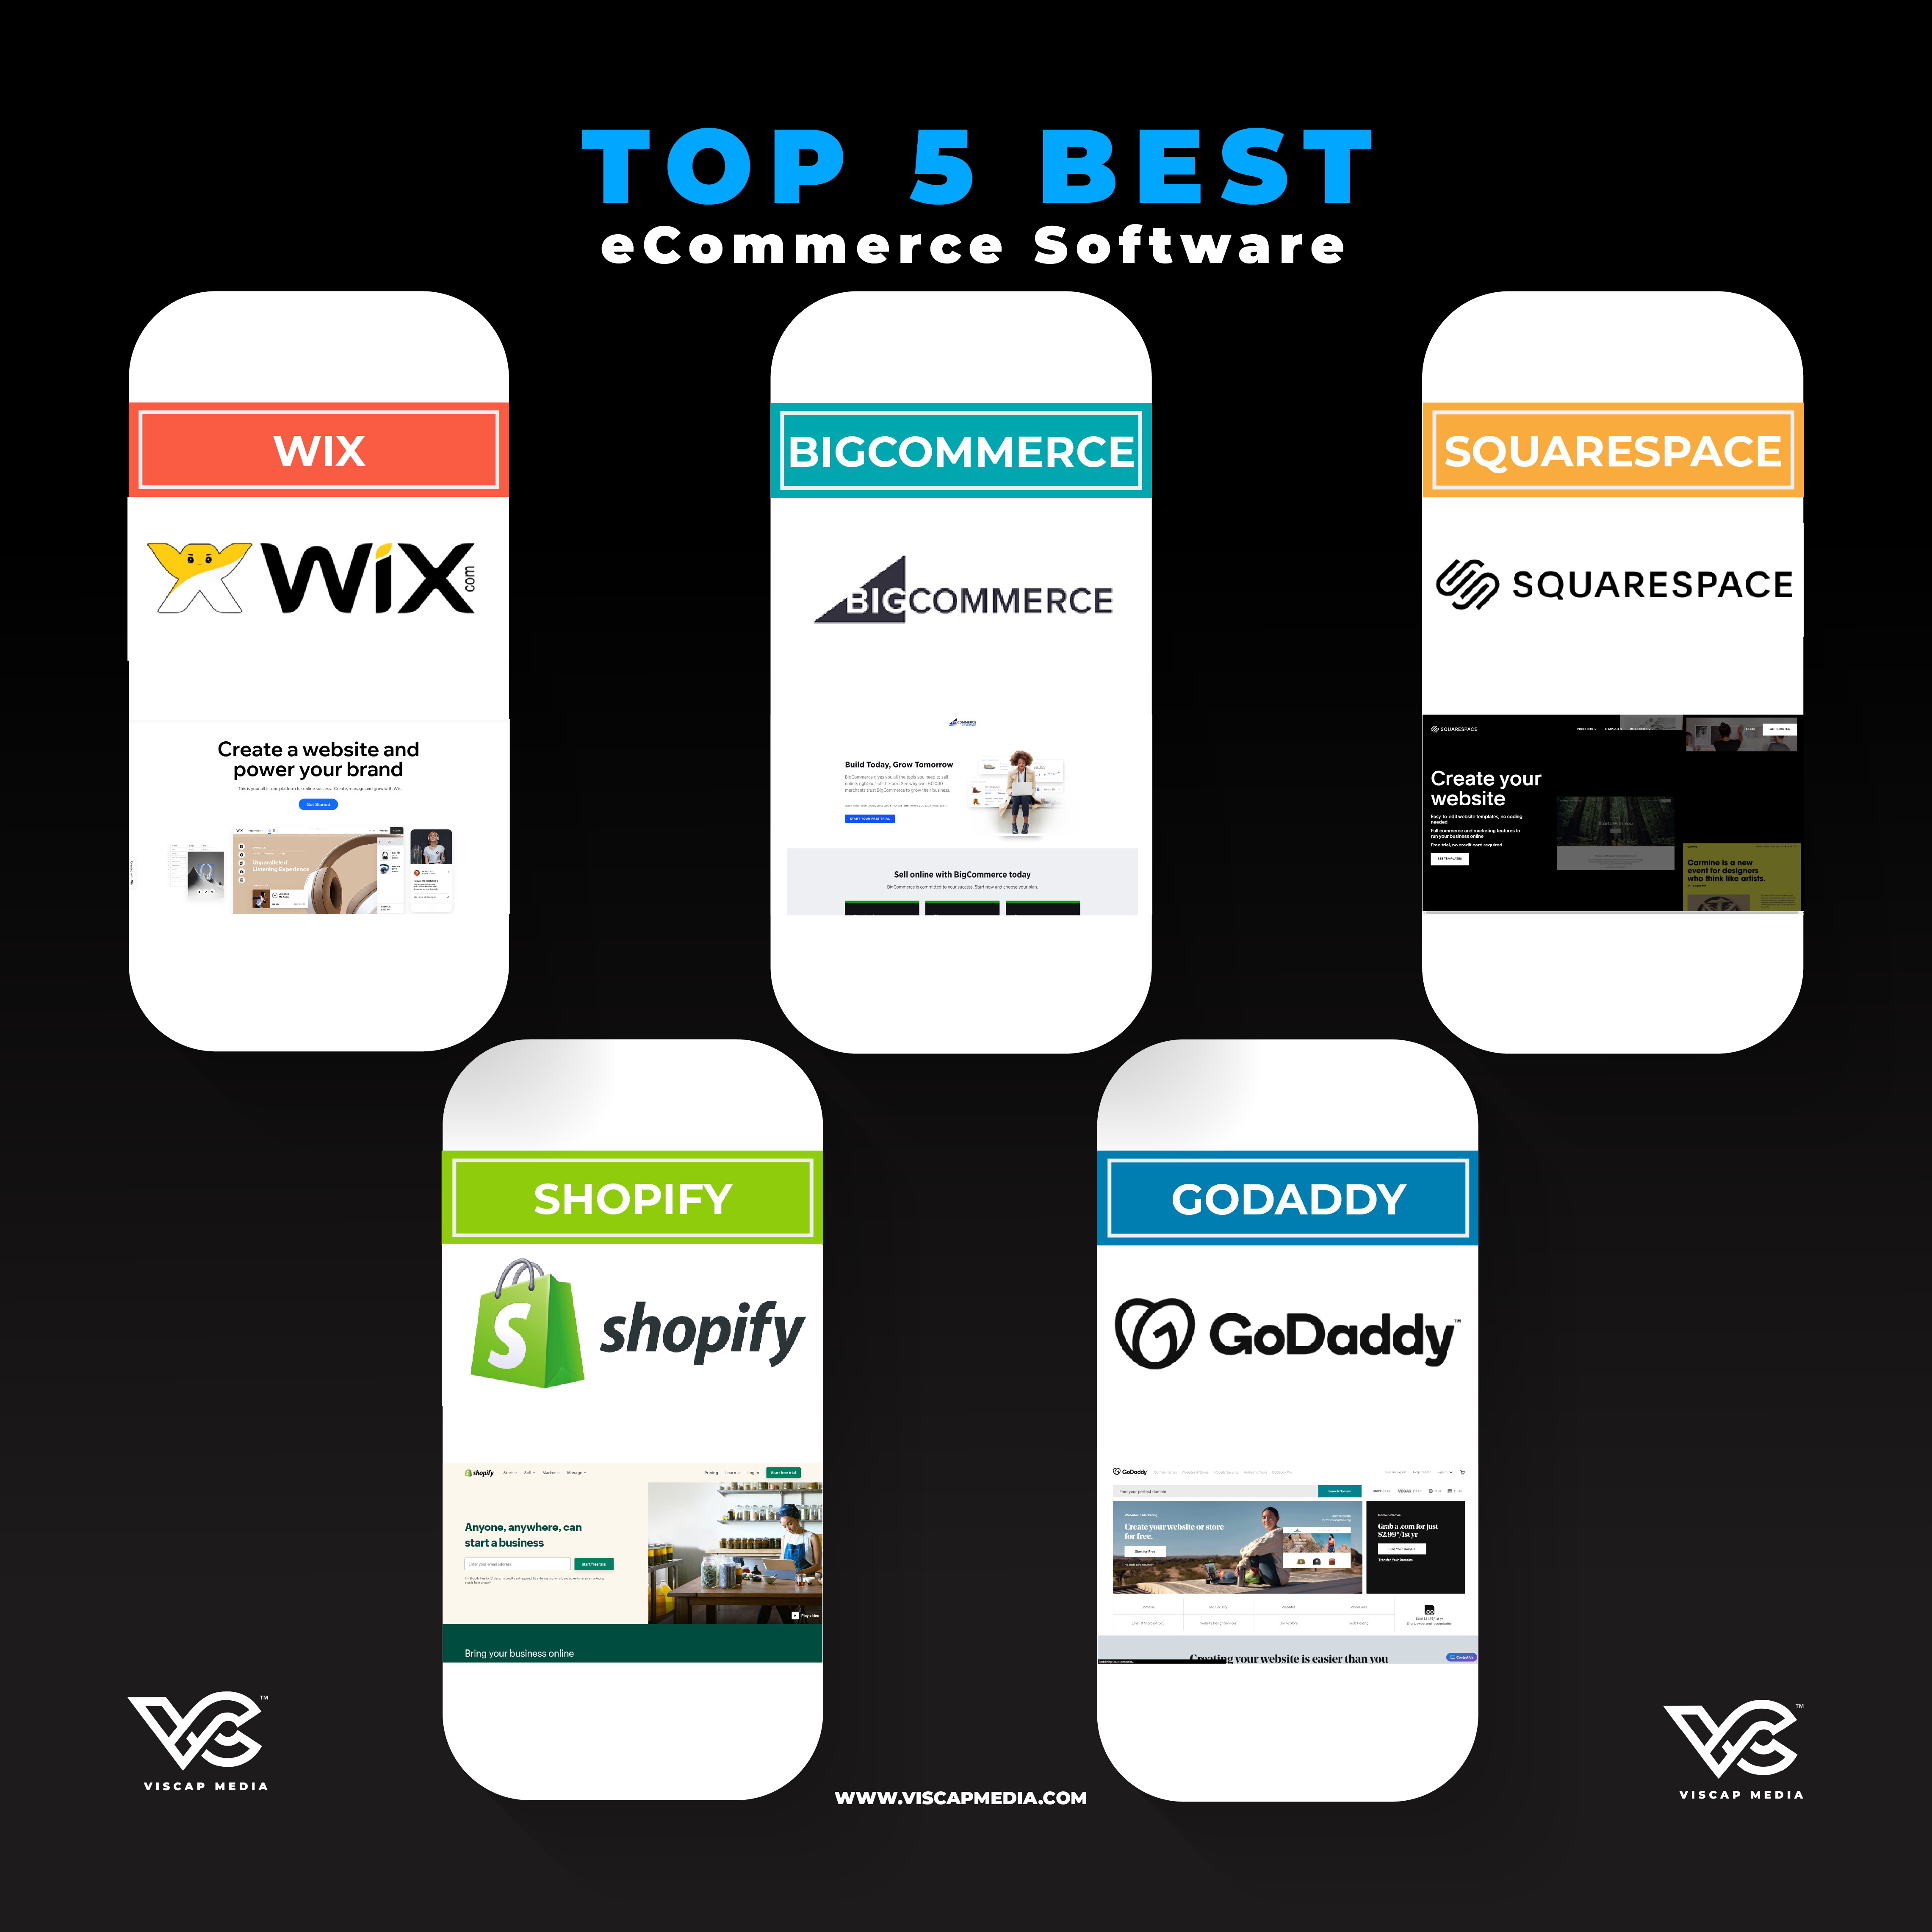 Top 5 Best eCommerce Software eCommerce Software & Marketing Infographic